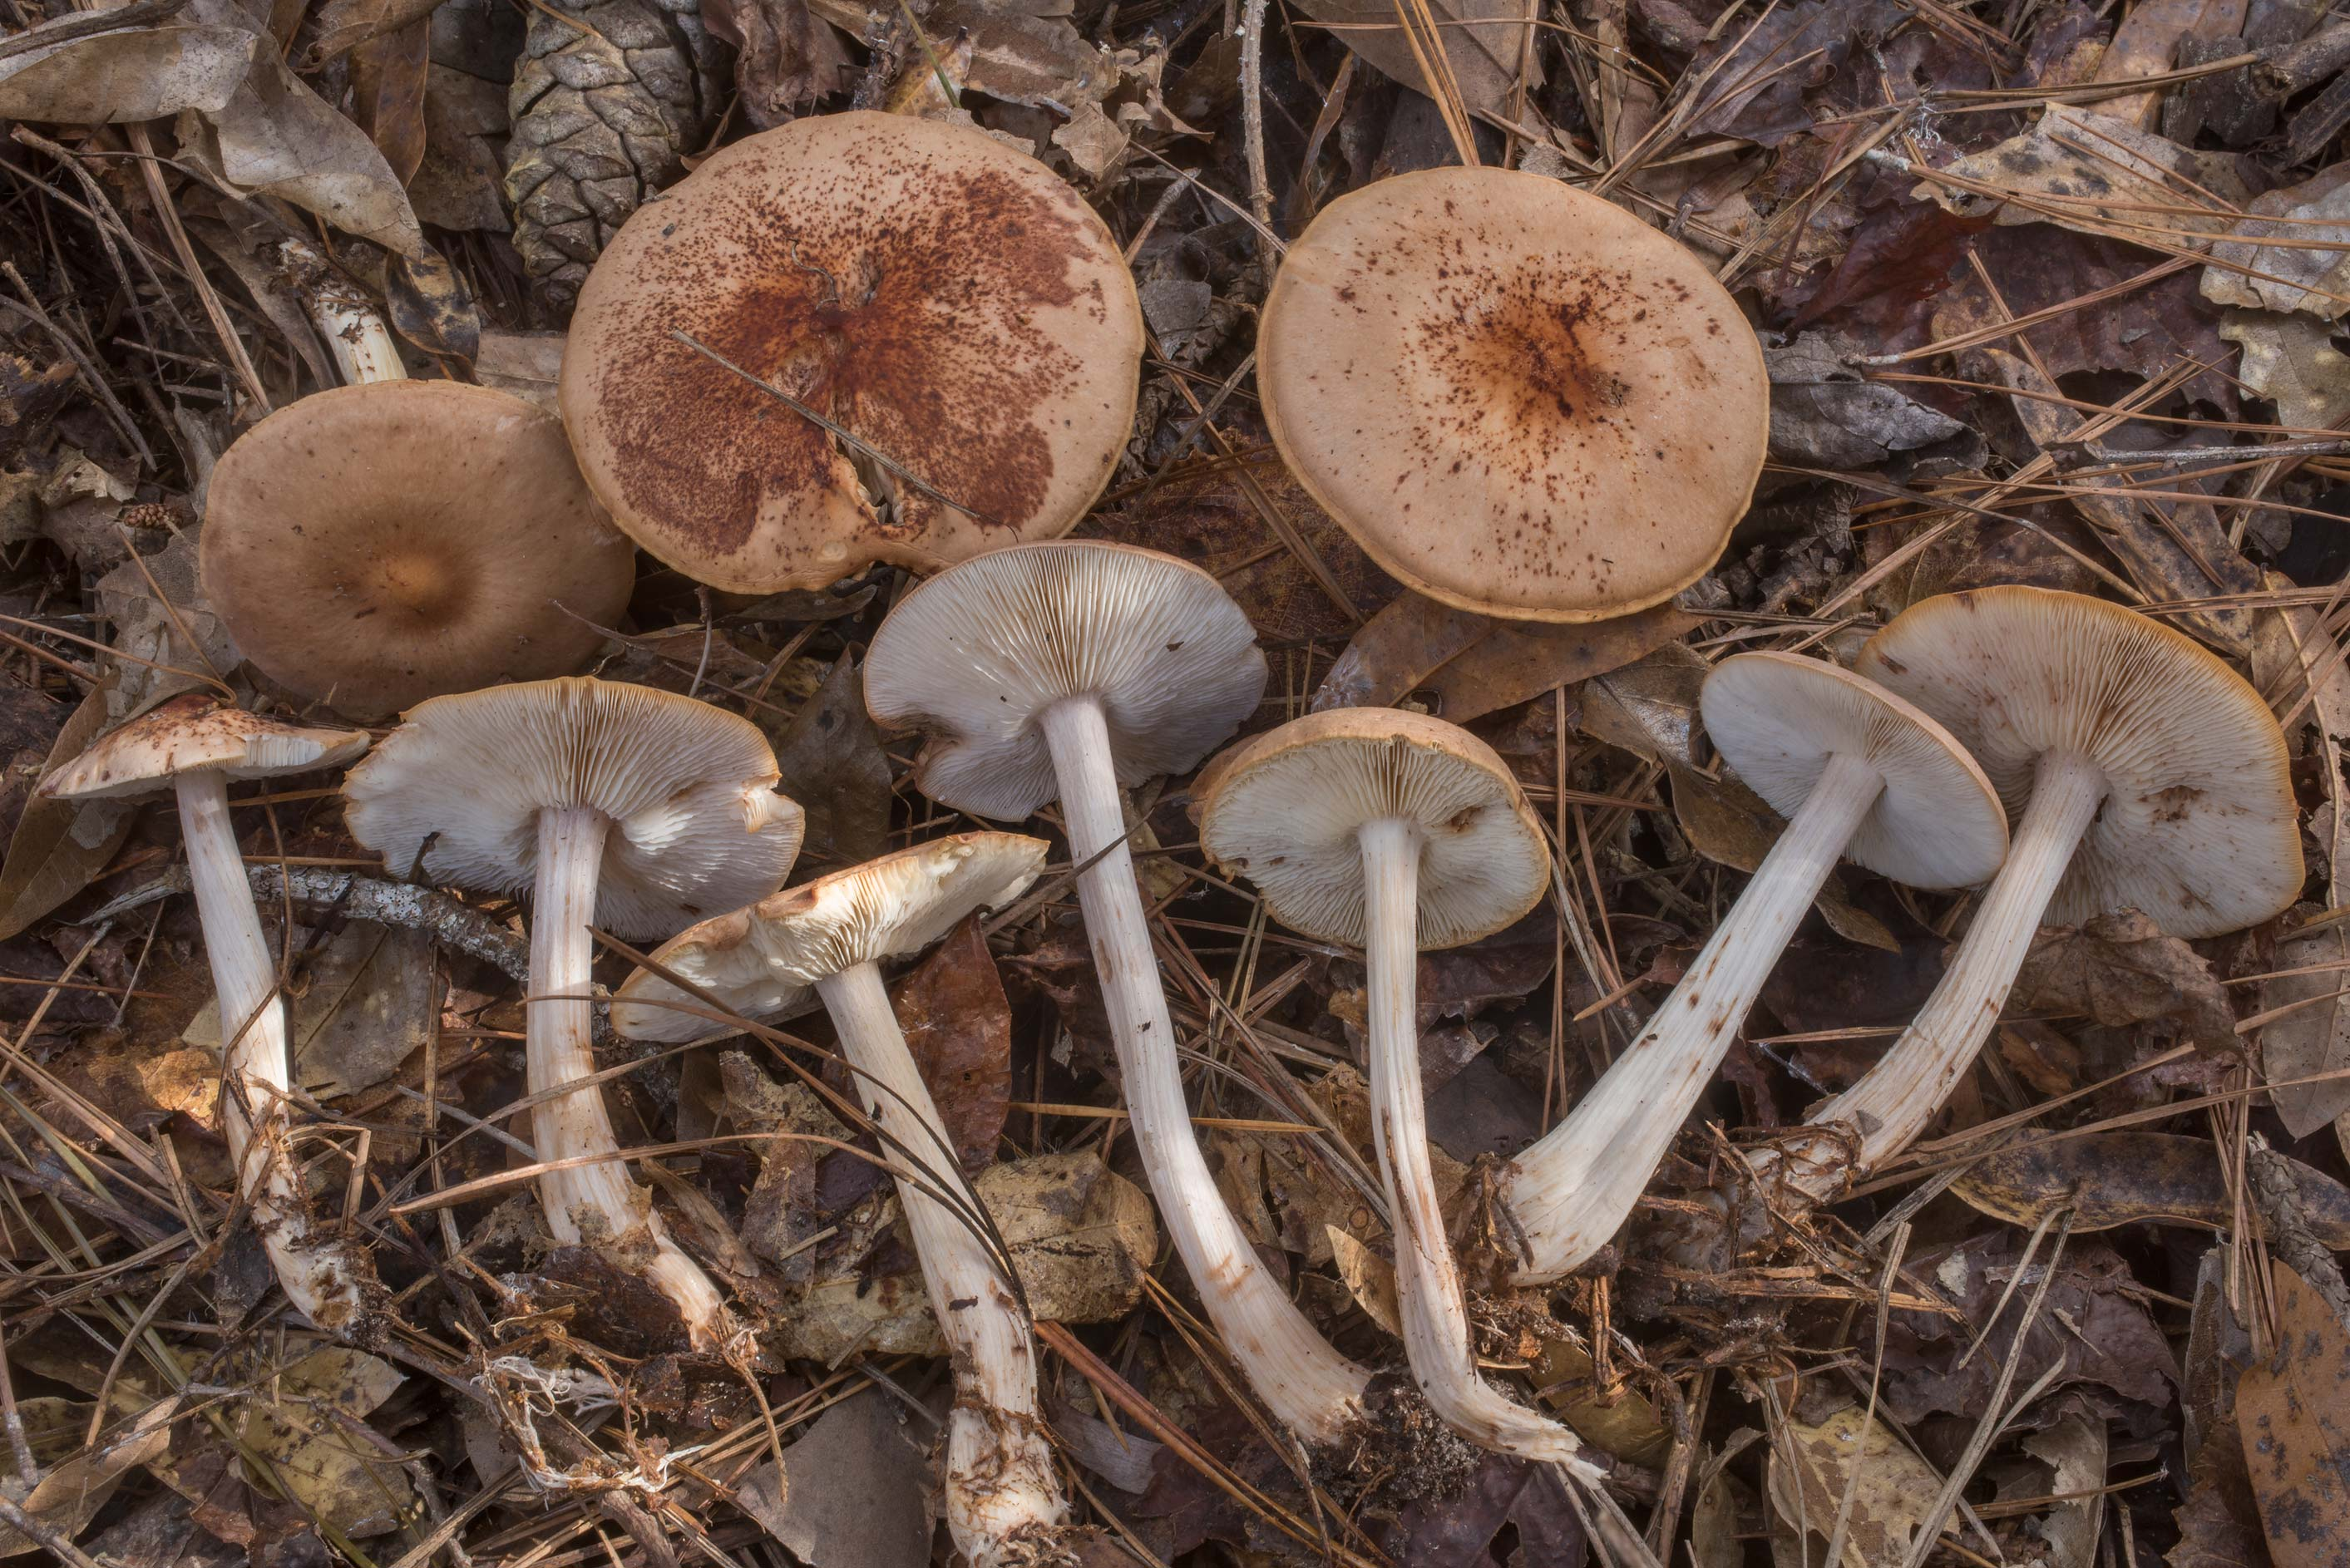 Spotted toughshank mushrooms (Rhodocollybia...National Forest. Cleveland, Texas